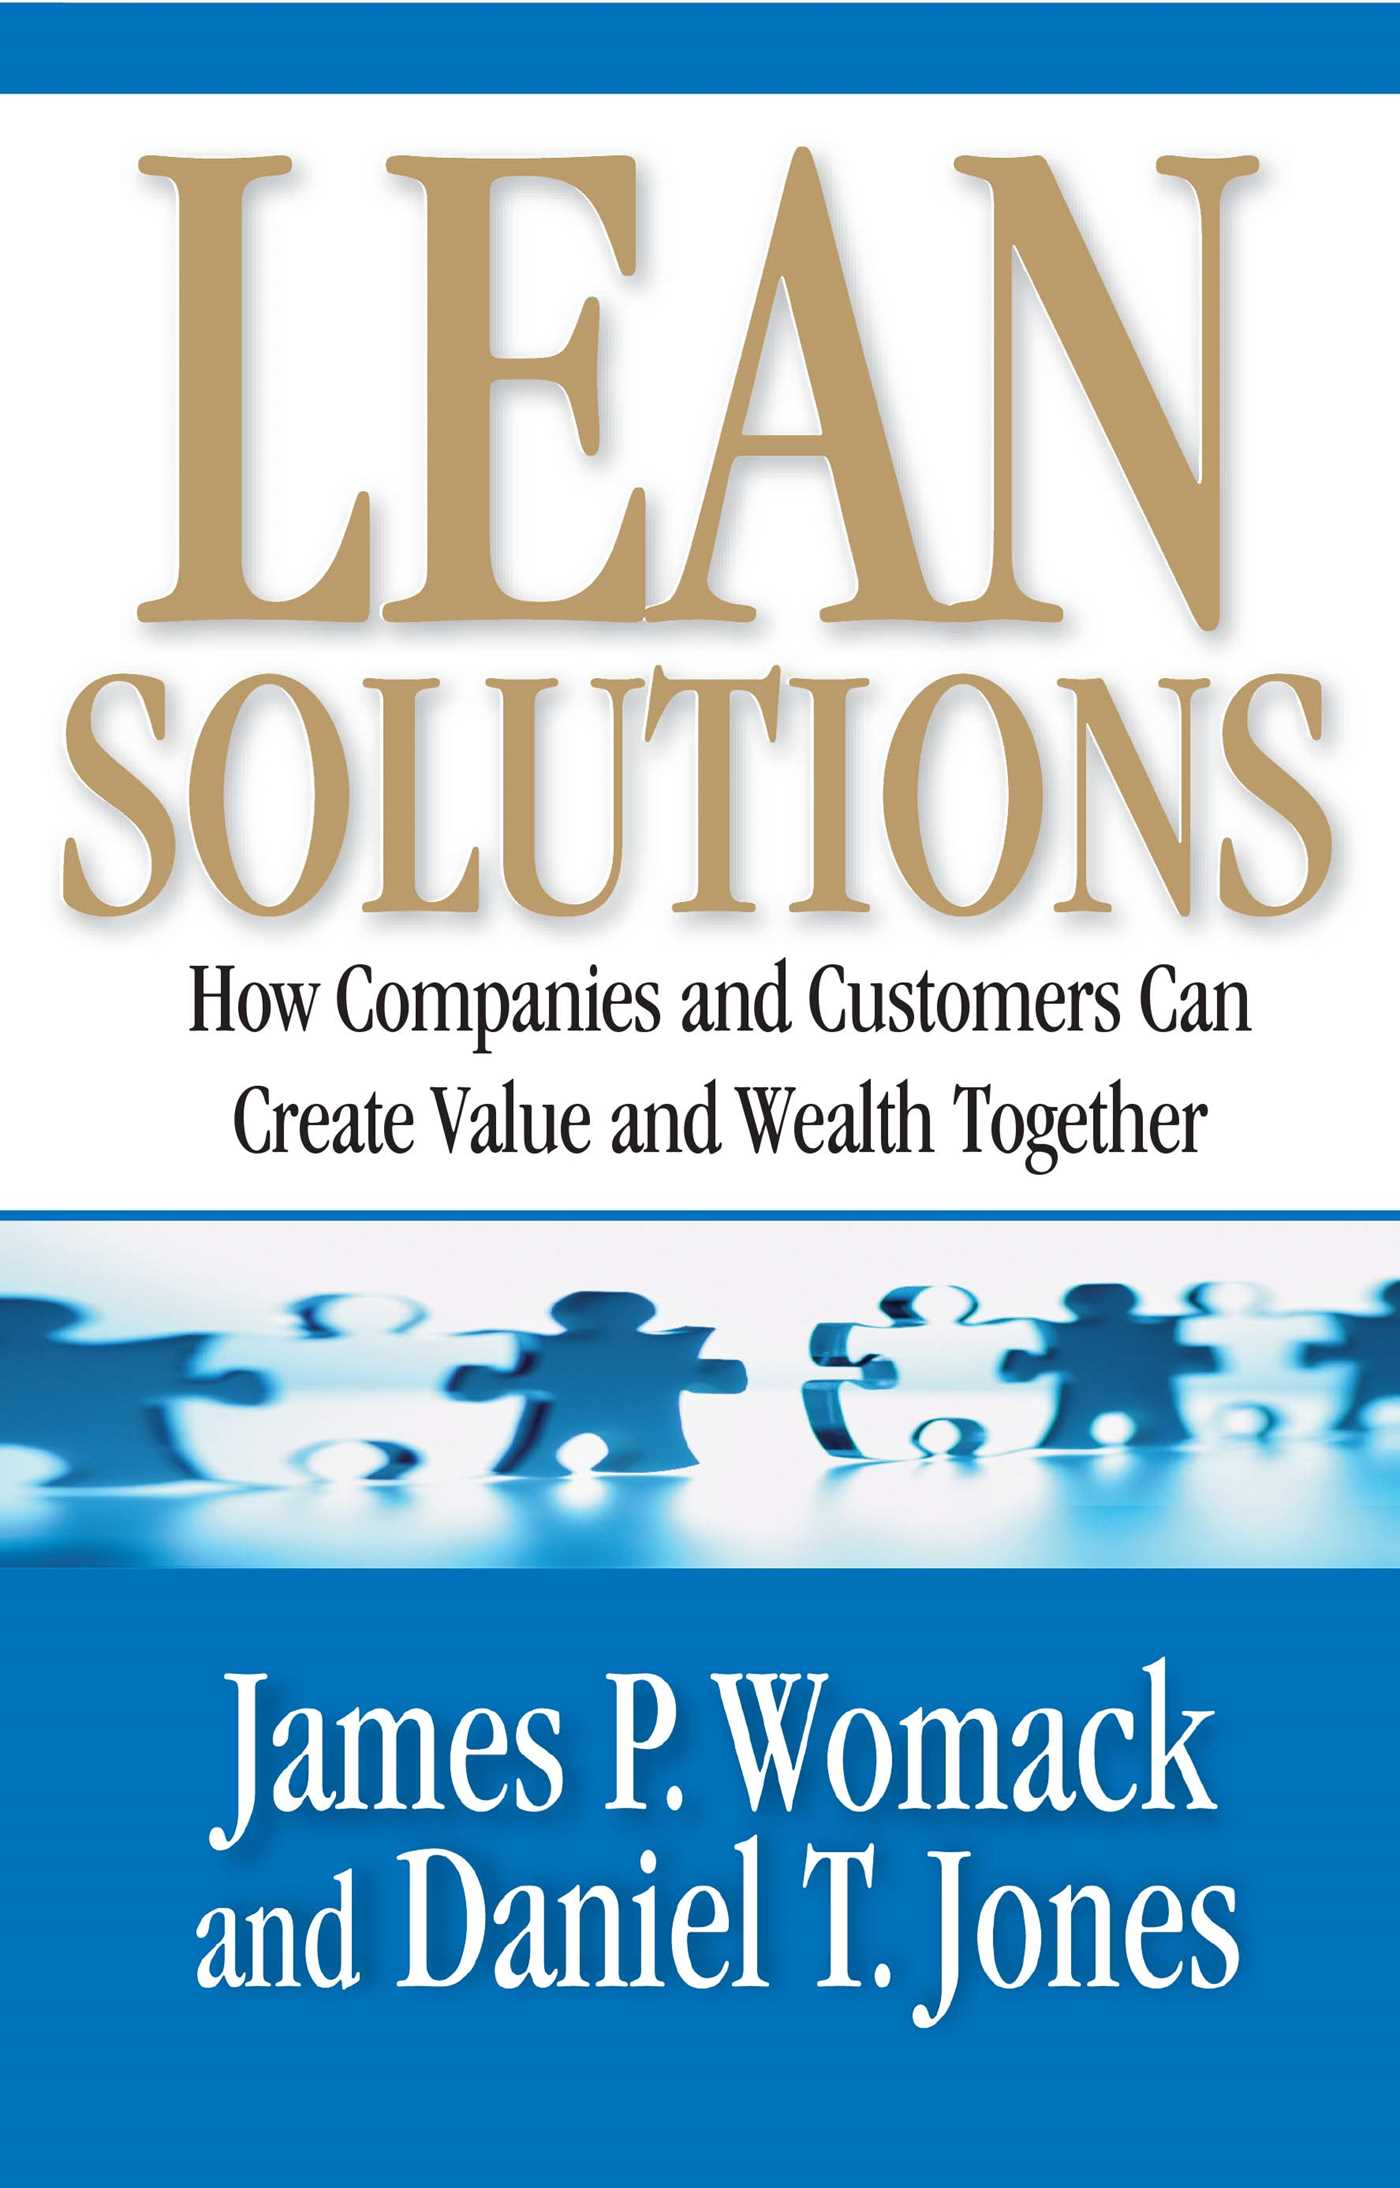 Lean solutions 9780743277792 hr